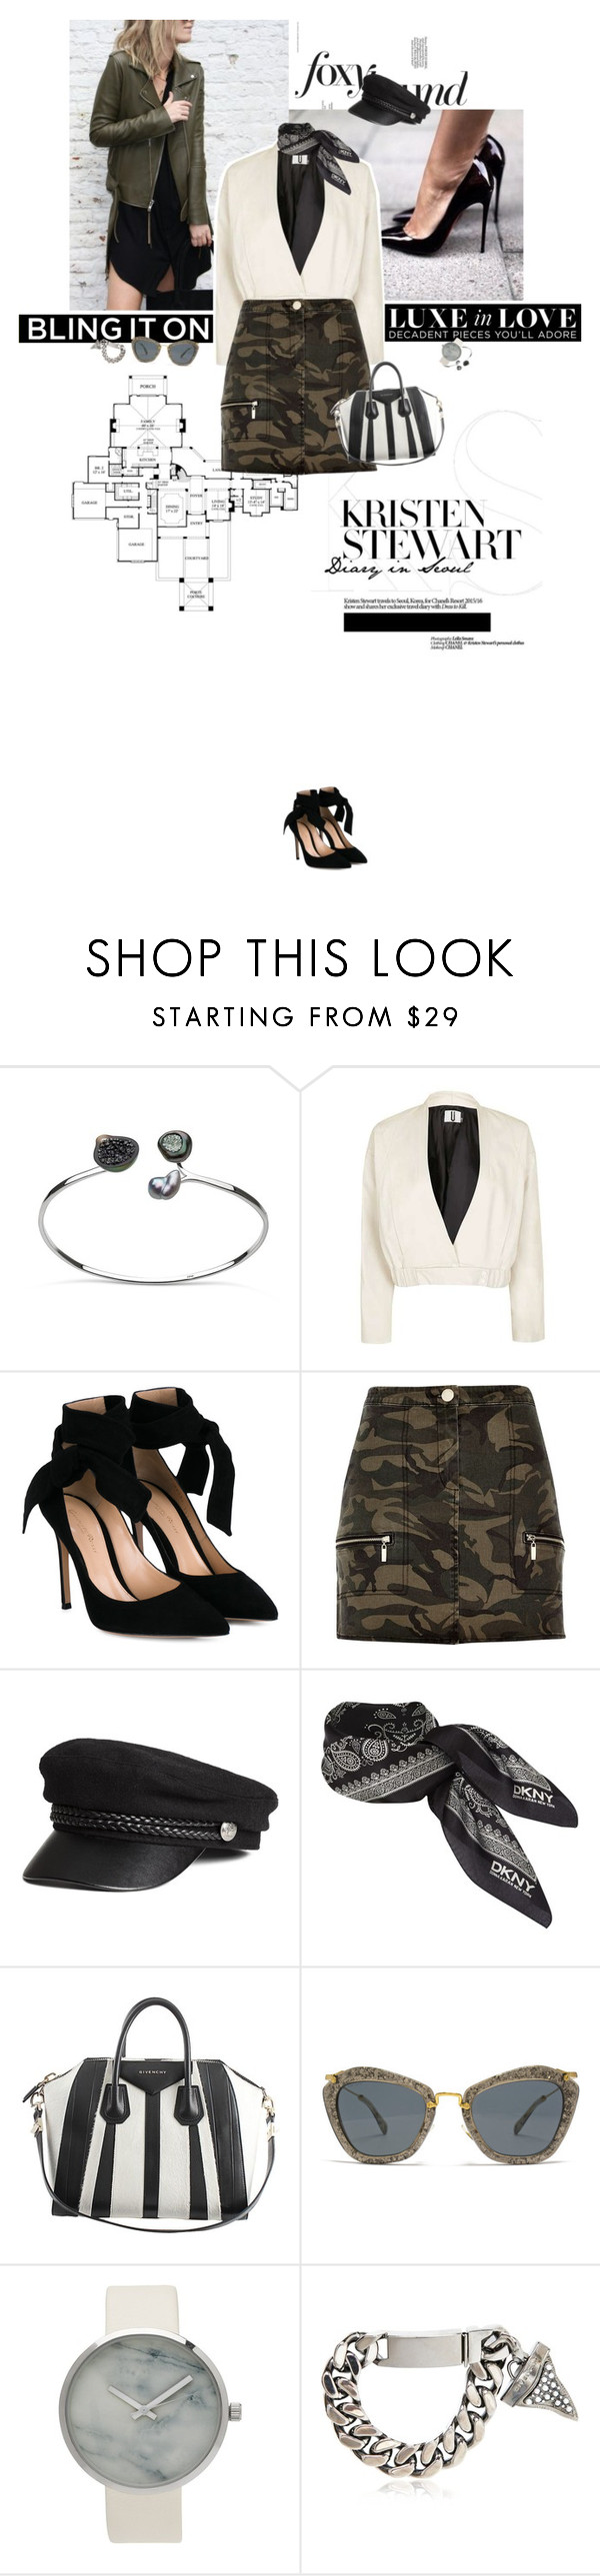 """""""Absolutely me."""" by sa3ina ❤ liked on Polyvore featuring Topshop, Gianvito Rossi, River Island, DKNY, Givenchy and Miu Miu"""